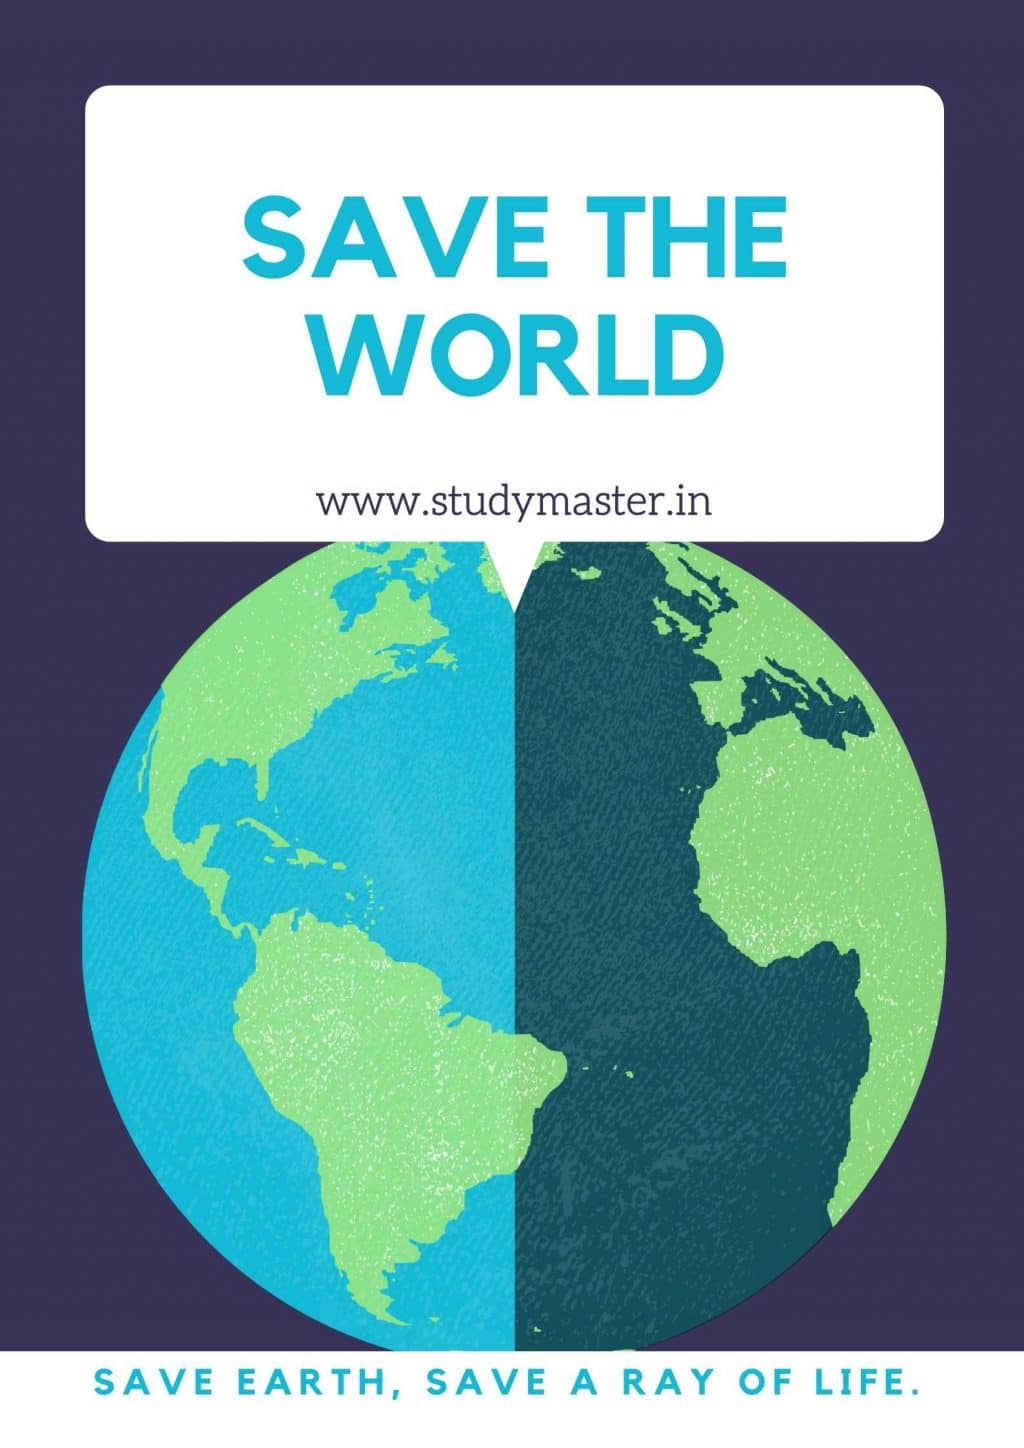 poster on save planet earth